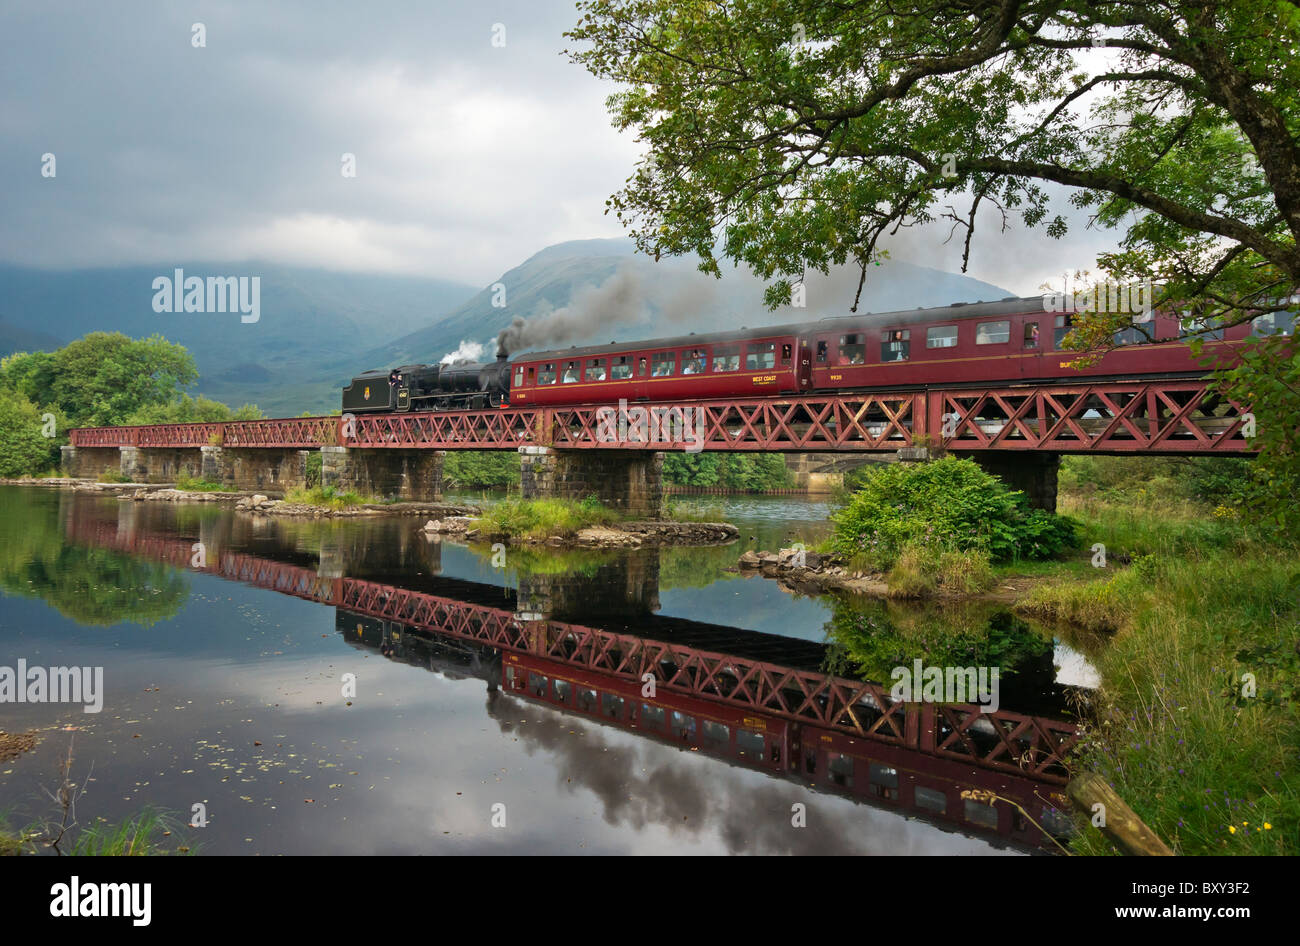 Preserved Class 5 steam locomotive No. 45407 hauls a special train across the viaduct the river Dochart at Lochawe - Stock Image